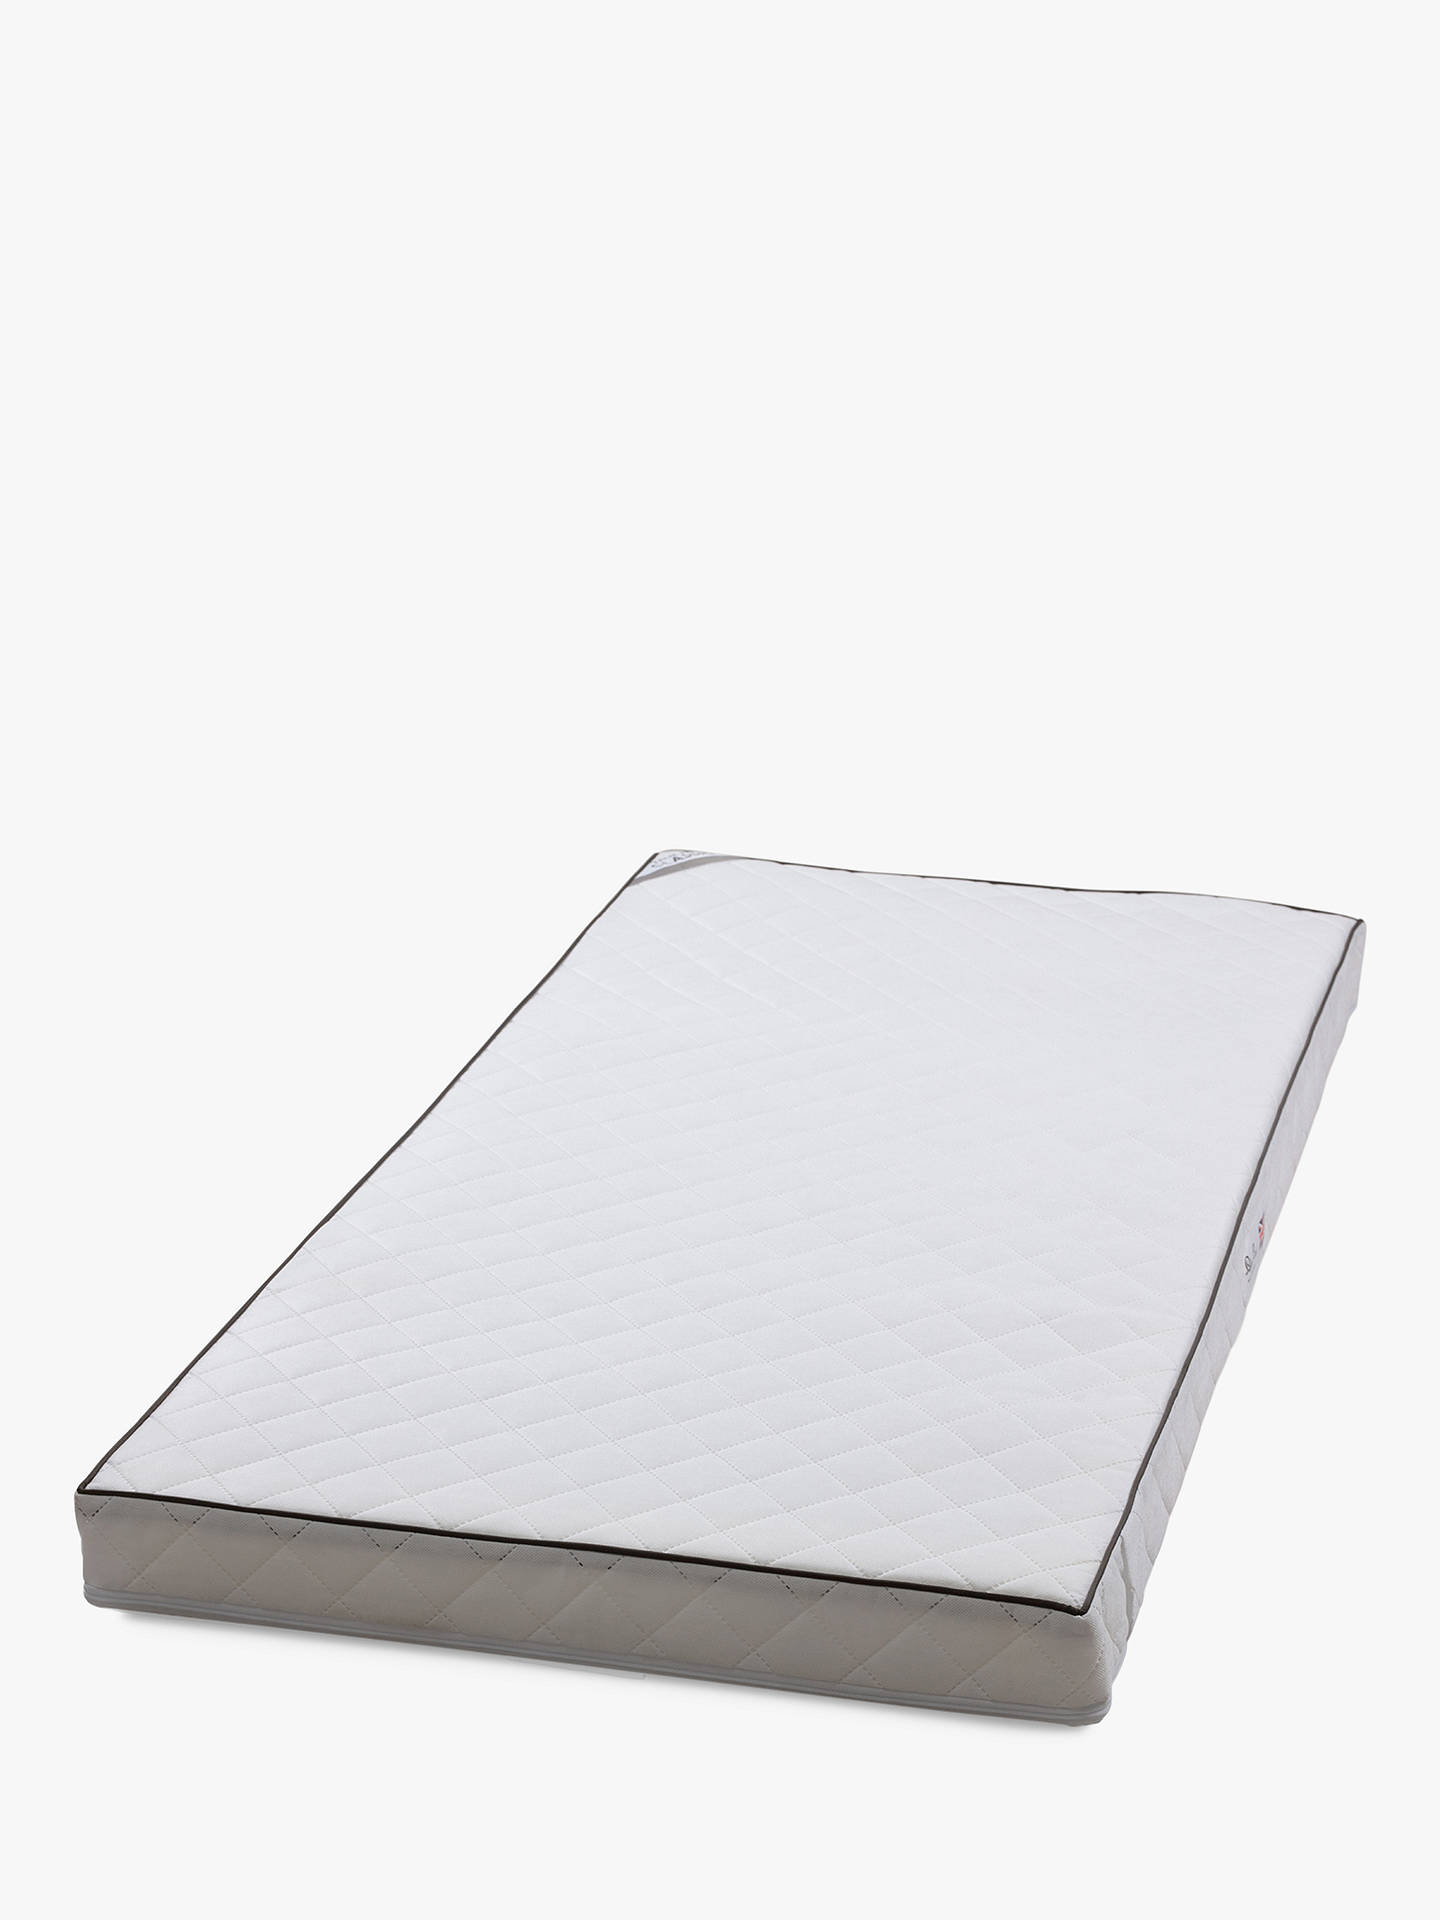 BuySilver Cross Classic True Fit TM Cotbed Mattress, 140cm x 70cm Online at johnlewis.com